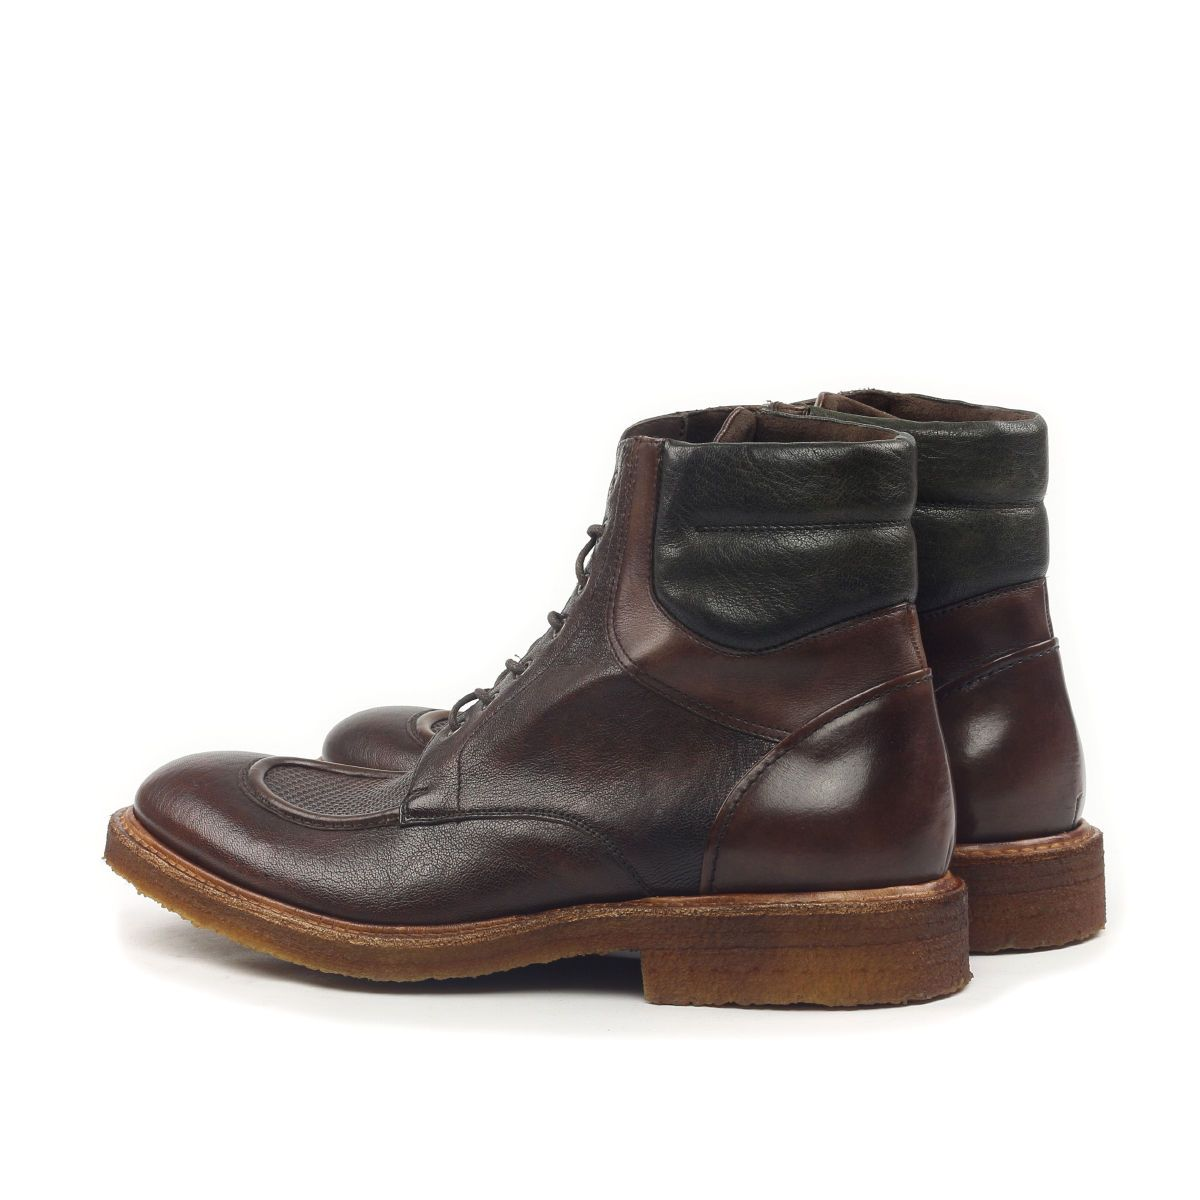 Omine Engraved Leather Vamp Chukka Boot